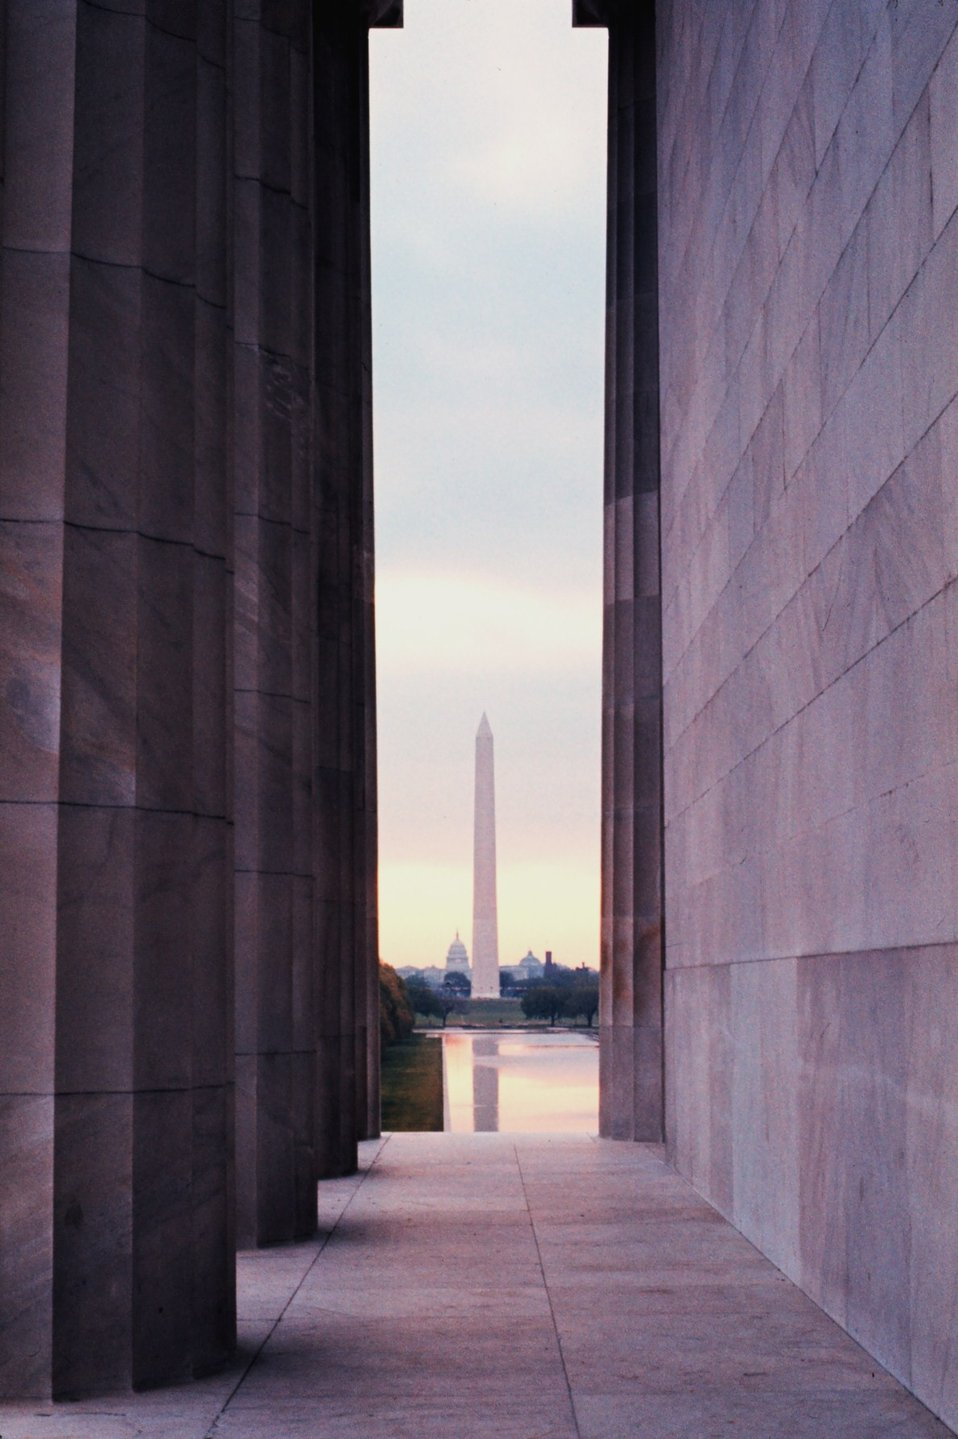 The Washington Monument reflected in the Reflecting Pool as seen from the Lincoln Memorial